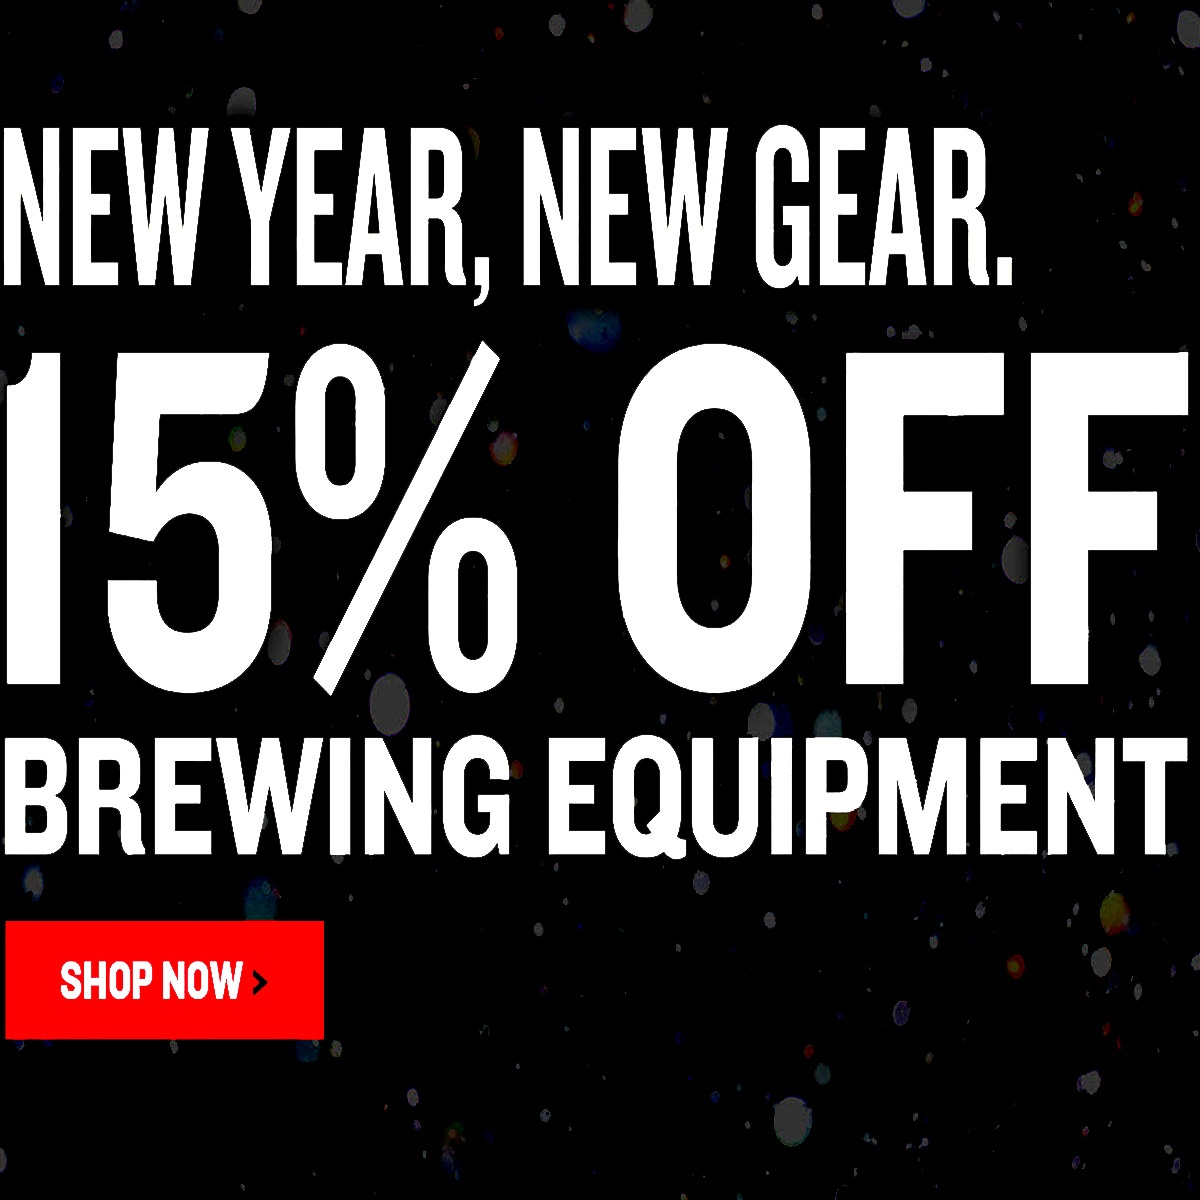 Northern Brewer Promo Code Save 15% On Home Brewing Equipment